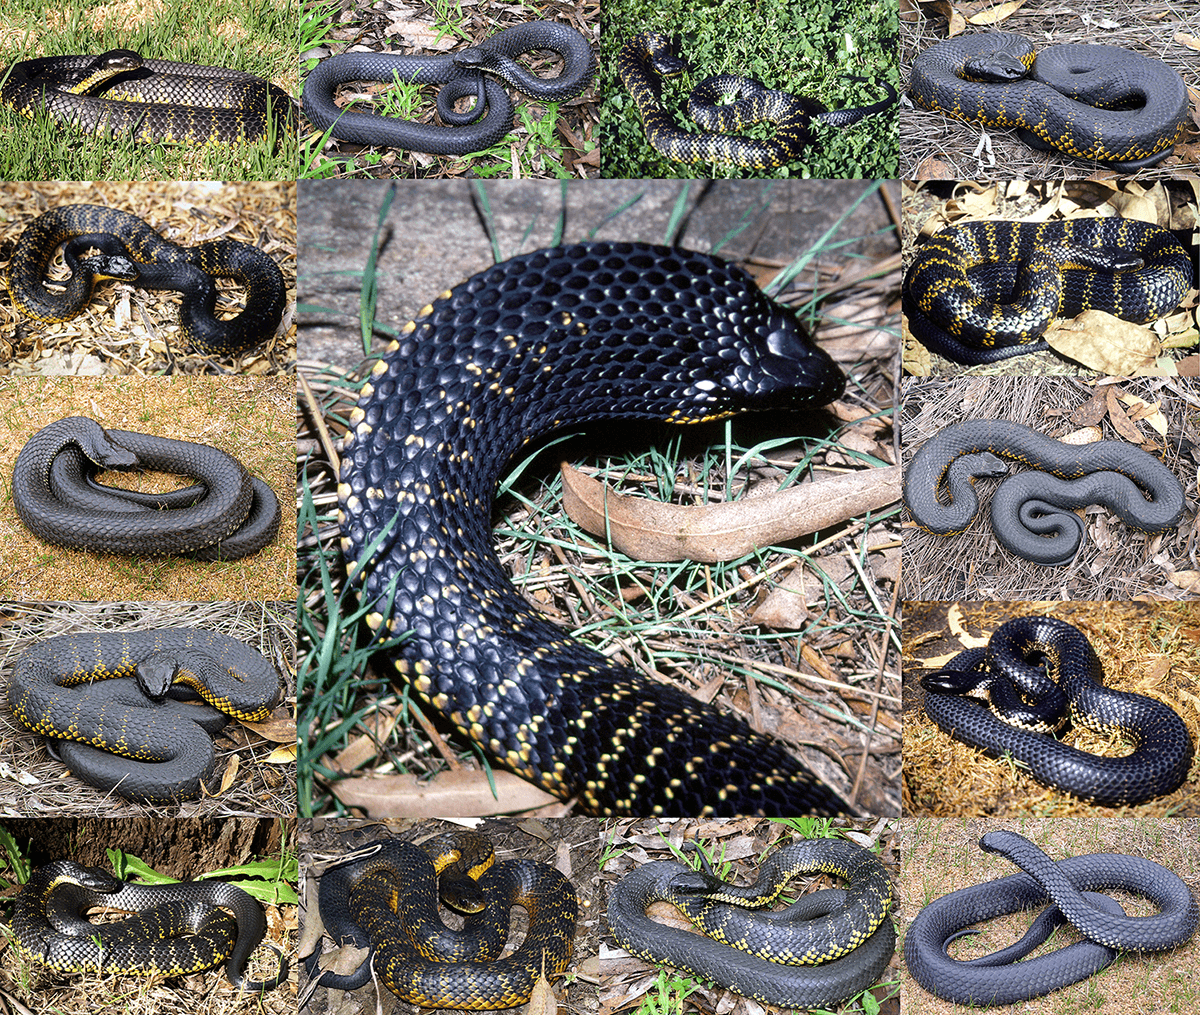 Tiger Snake Emnotechis Em Smallboulenger 1896 Small Anatomy Diagram Image Search Results Notechis Scutatus Montage Showing The Range Of Colour Variation Seen Within This Species In Western Australia Photo Brian